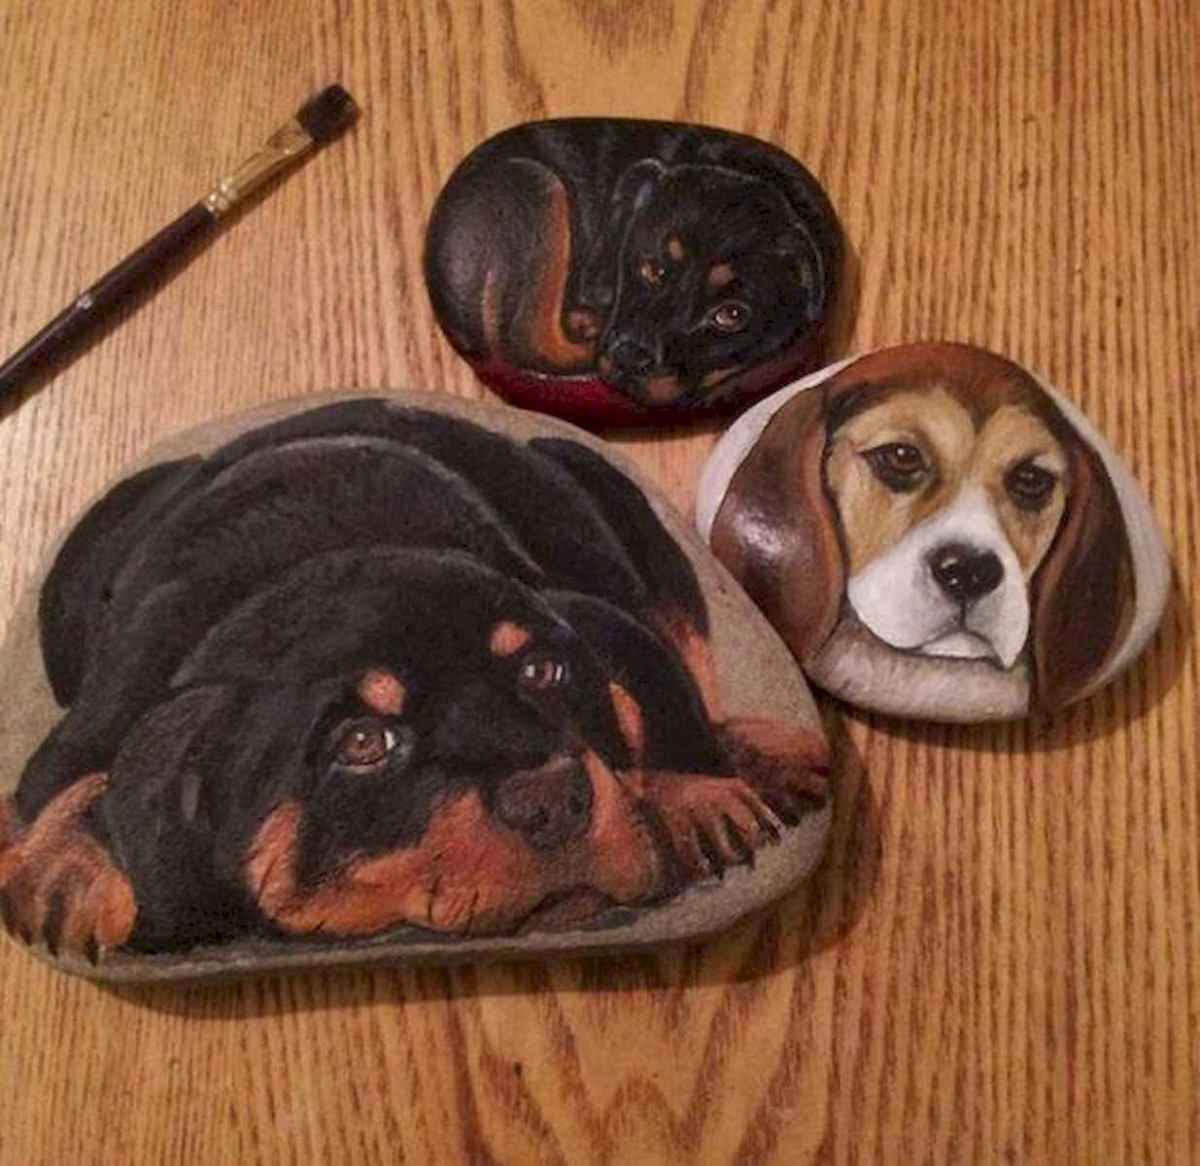 40 Awesome DIY Projects Painted Rocks Animals Dogs for Summer Ideas (10)